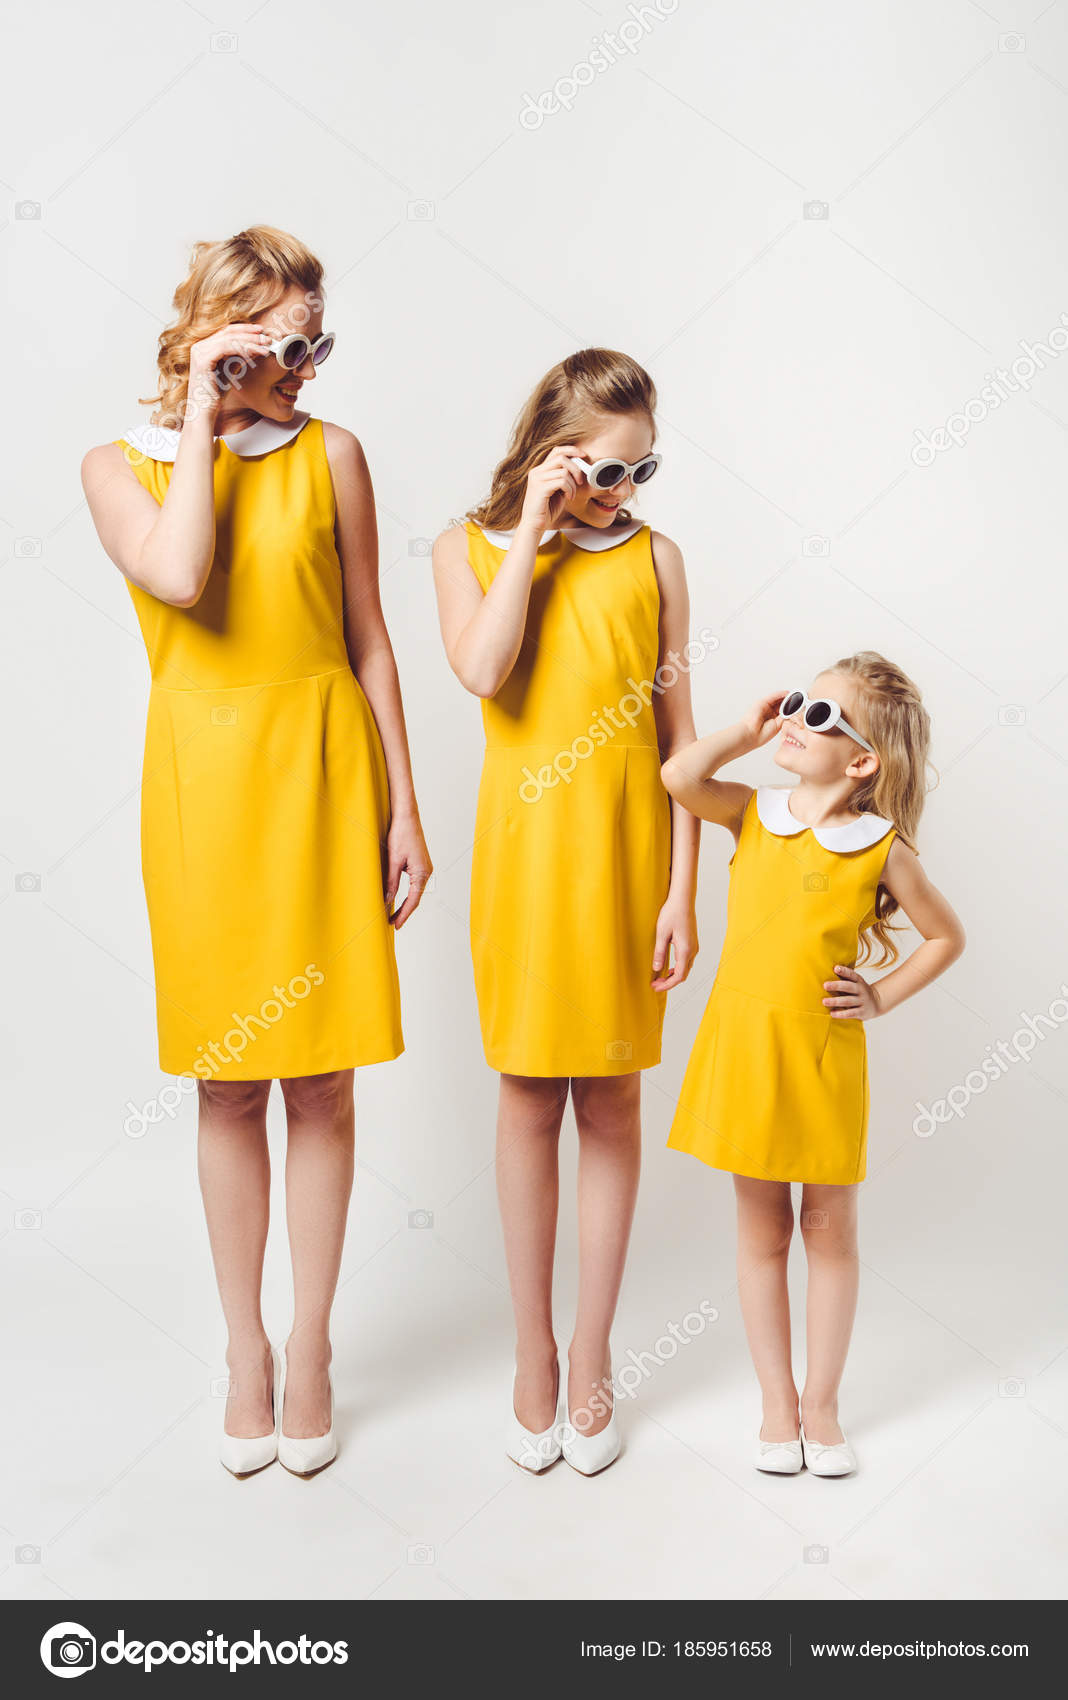 Stylish Mother Daughters Similar Retro Style Yellow Dresses Looking Each —  Stock Photo cc7393af2